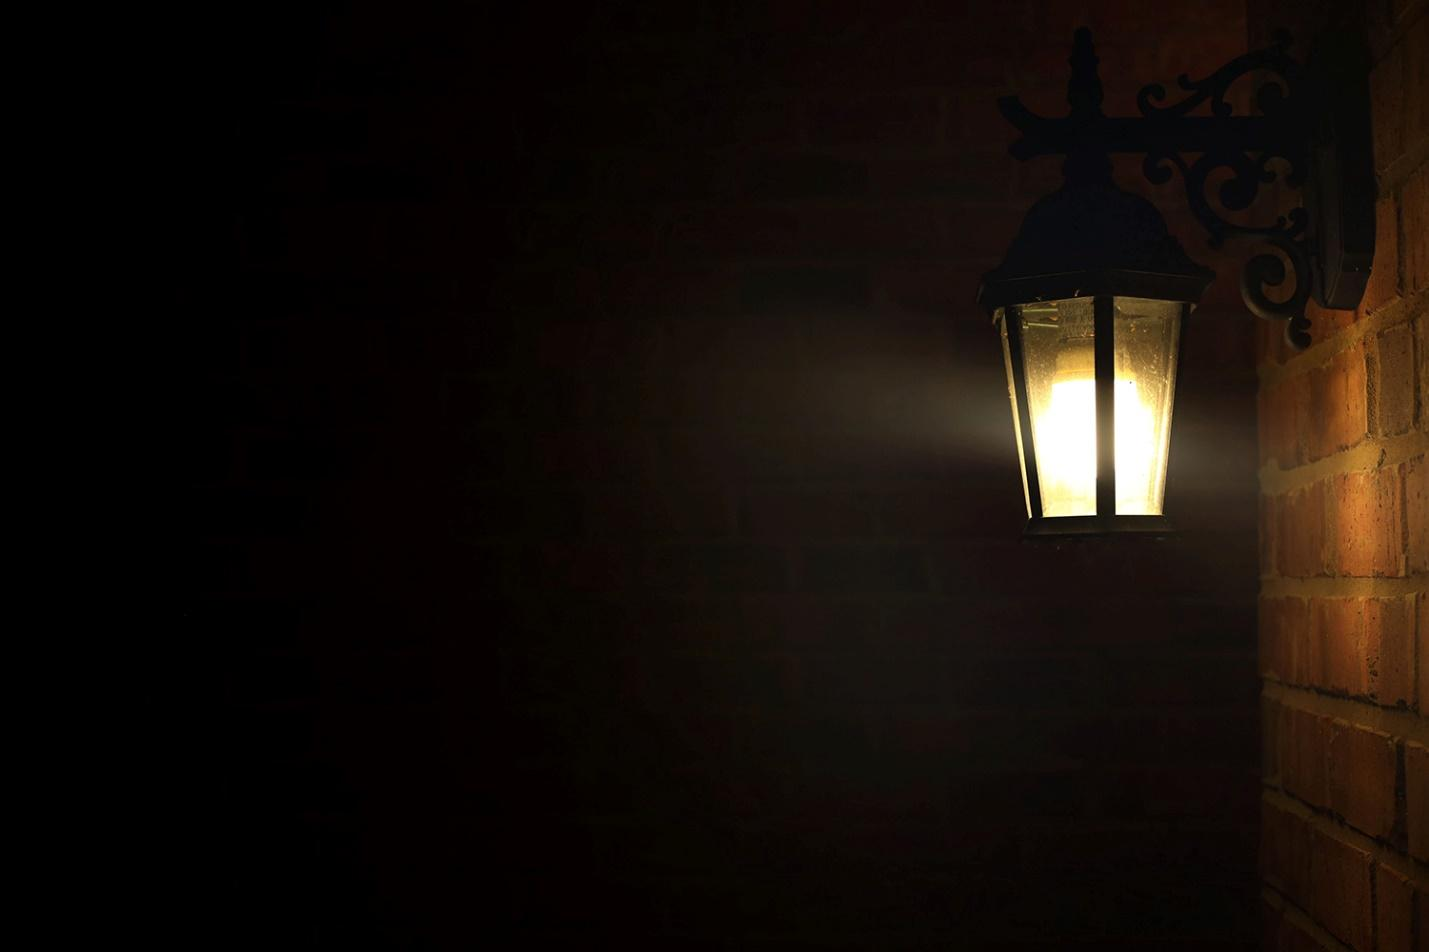 Lighting on the fornt of a house